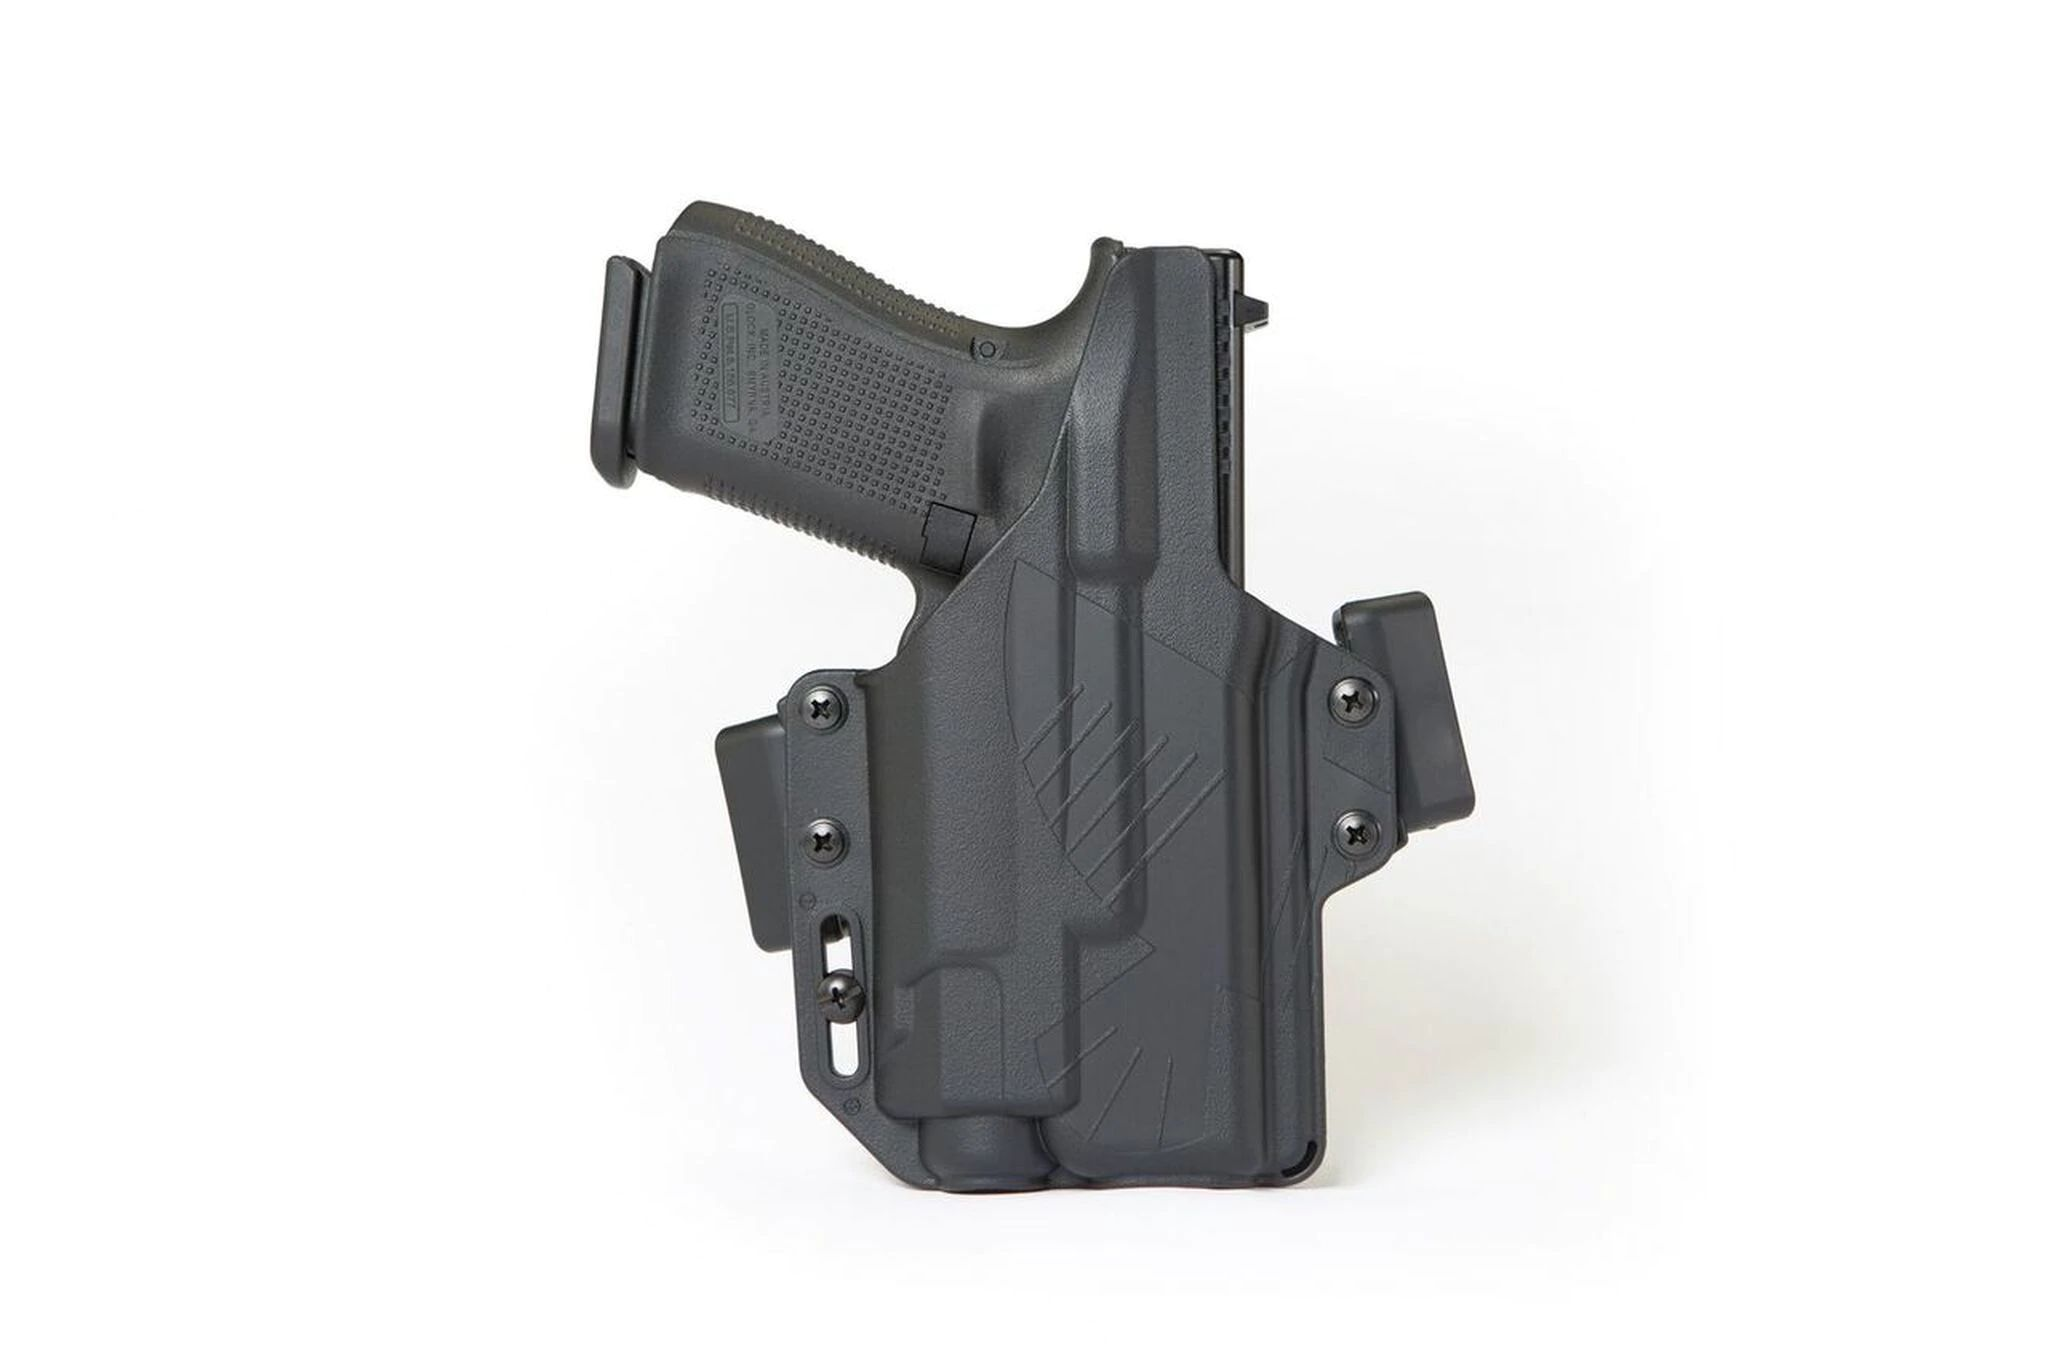 KYDEX OWB HOLSTER COMPATIBLE WITH GLOCK 19//17//34 WITH SUREFIRE X300 multicam